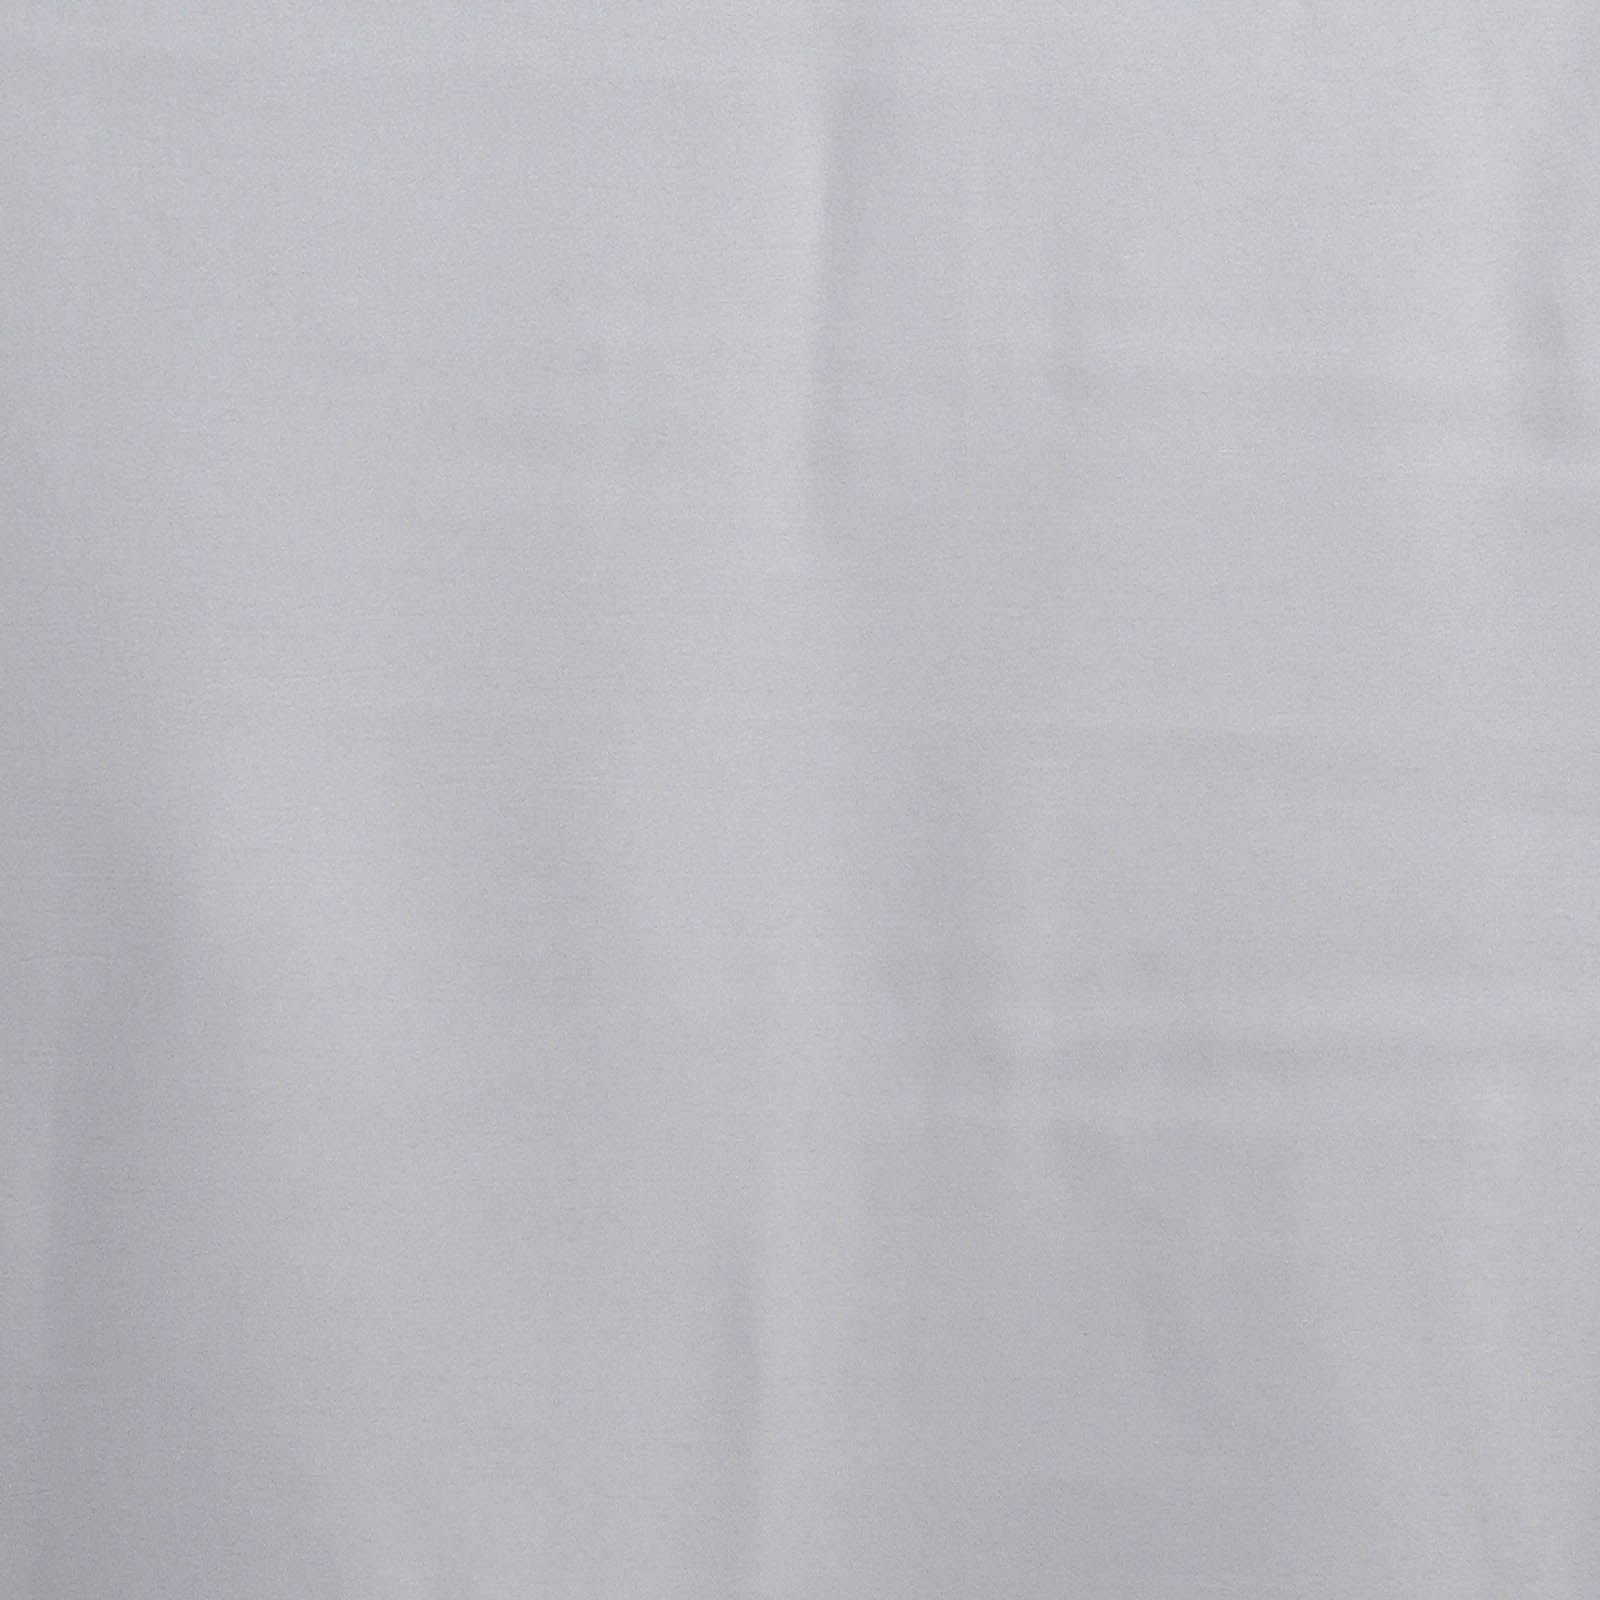 90x156-034-Polyester-Rectangle-Tablecloths-For-Wedding-Party-Banquet-Events thumbnail 55